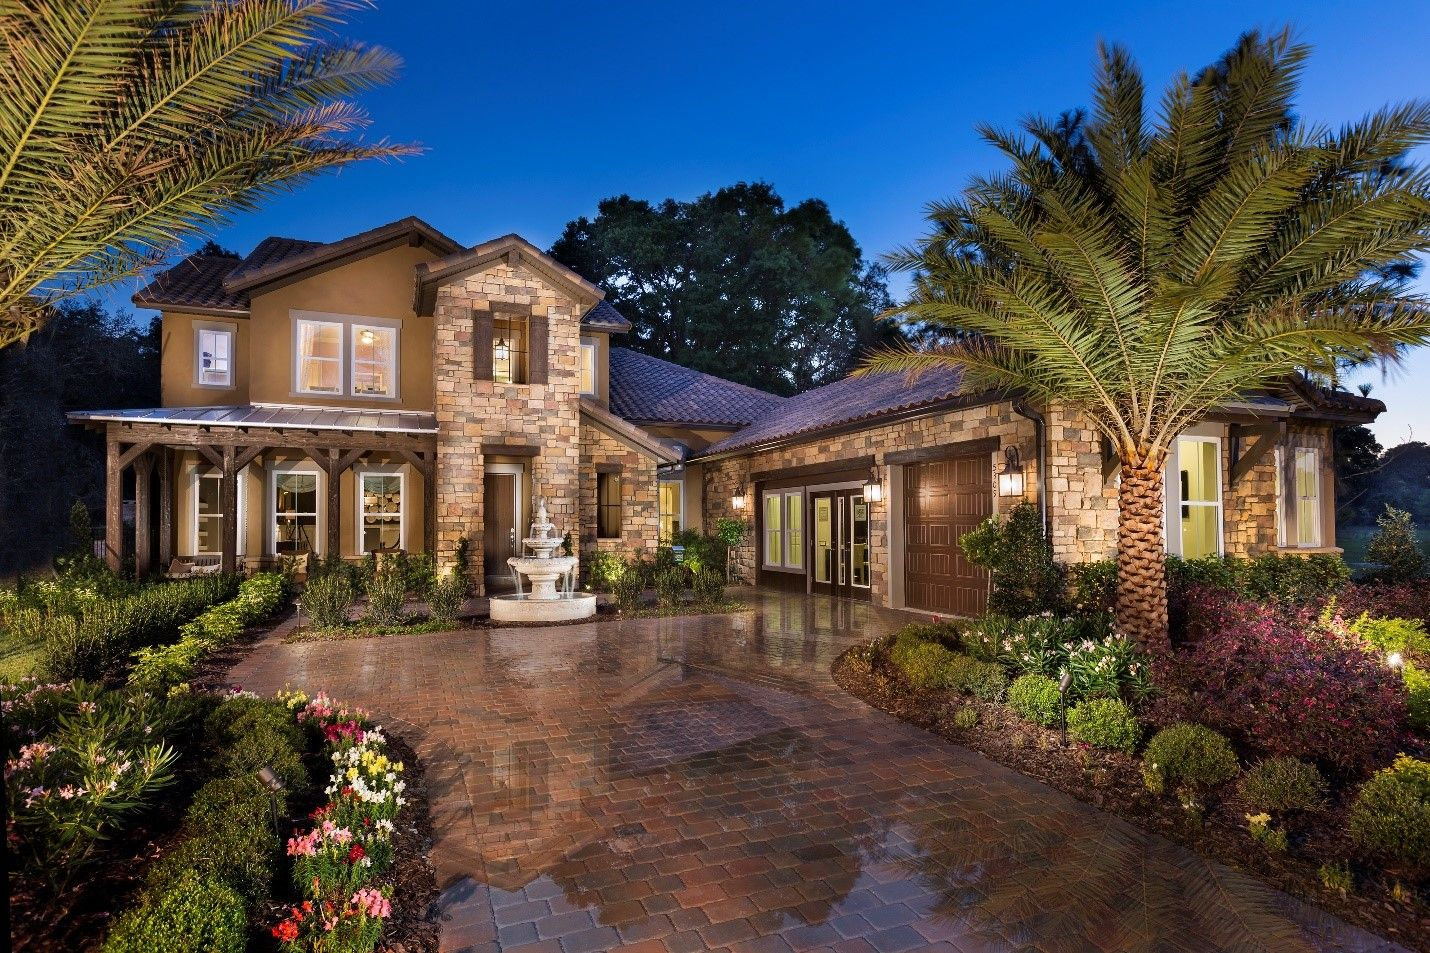 lithia homes for sale homes for sale in lithia fl homegain